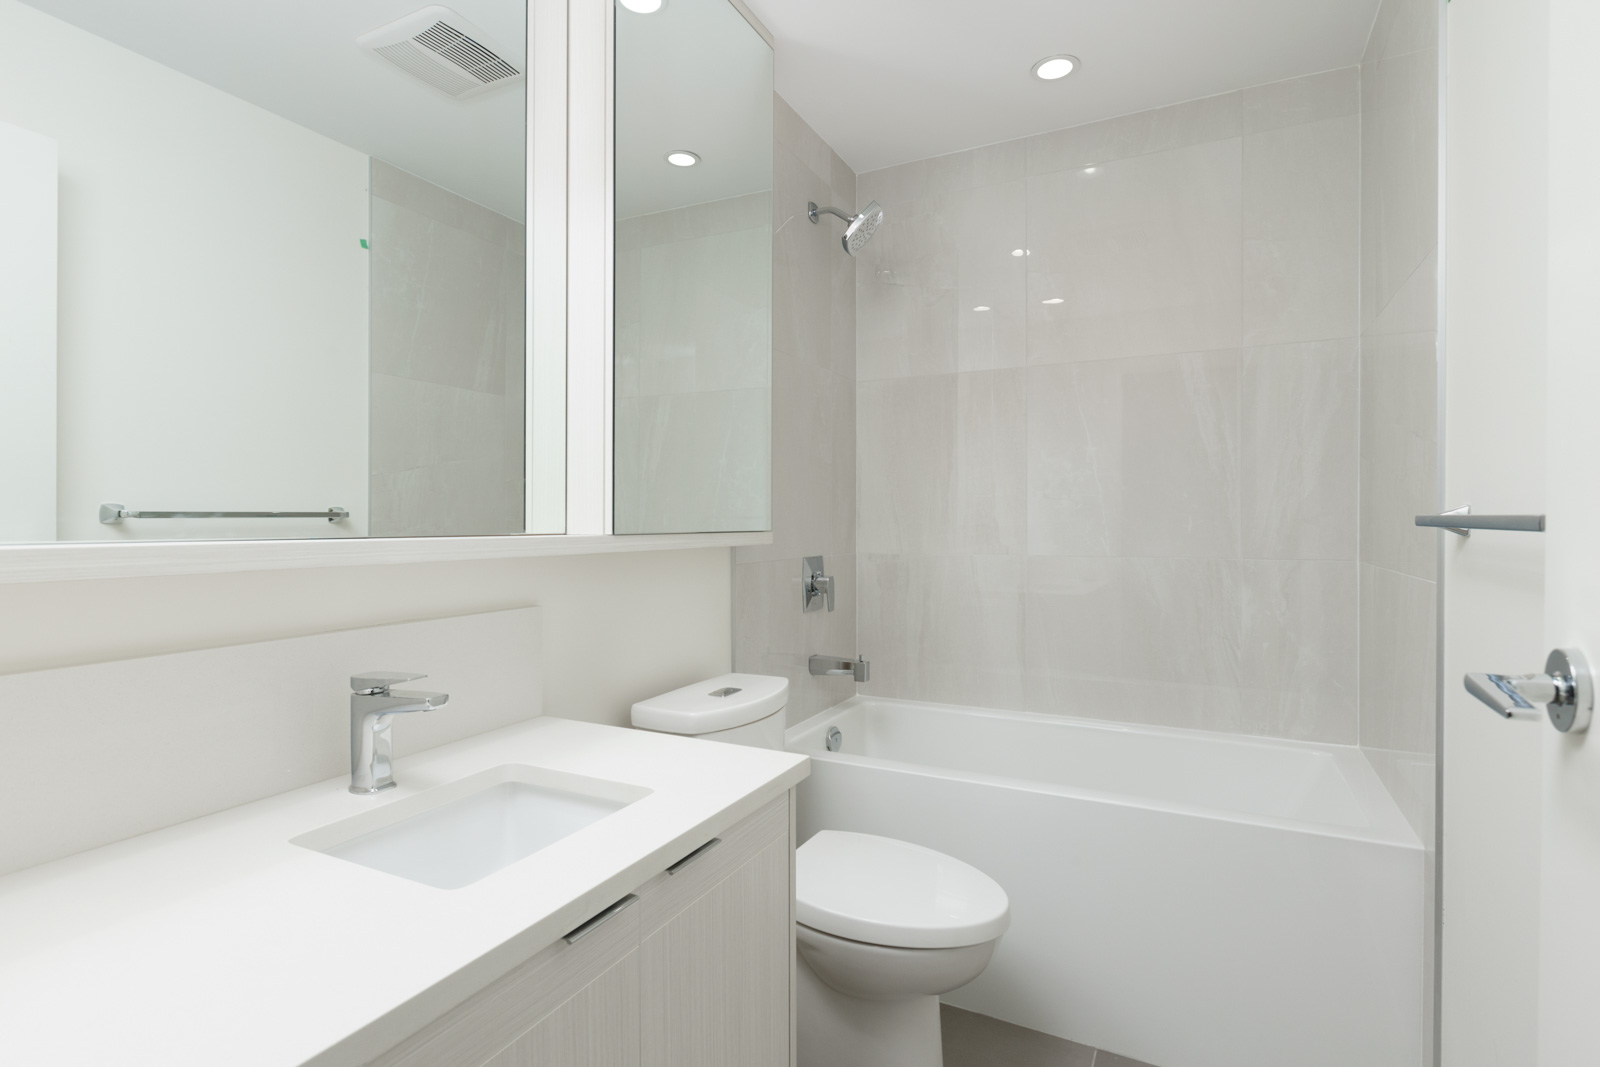 bathroom with mirror and white countertop and toilet and bathtub